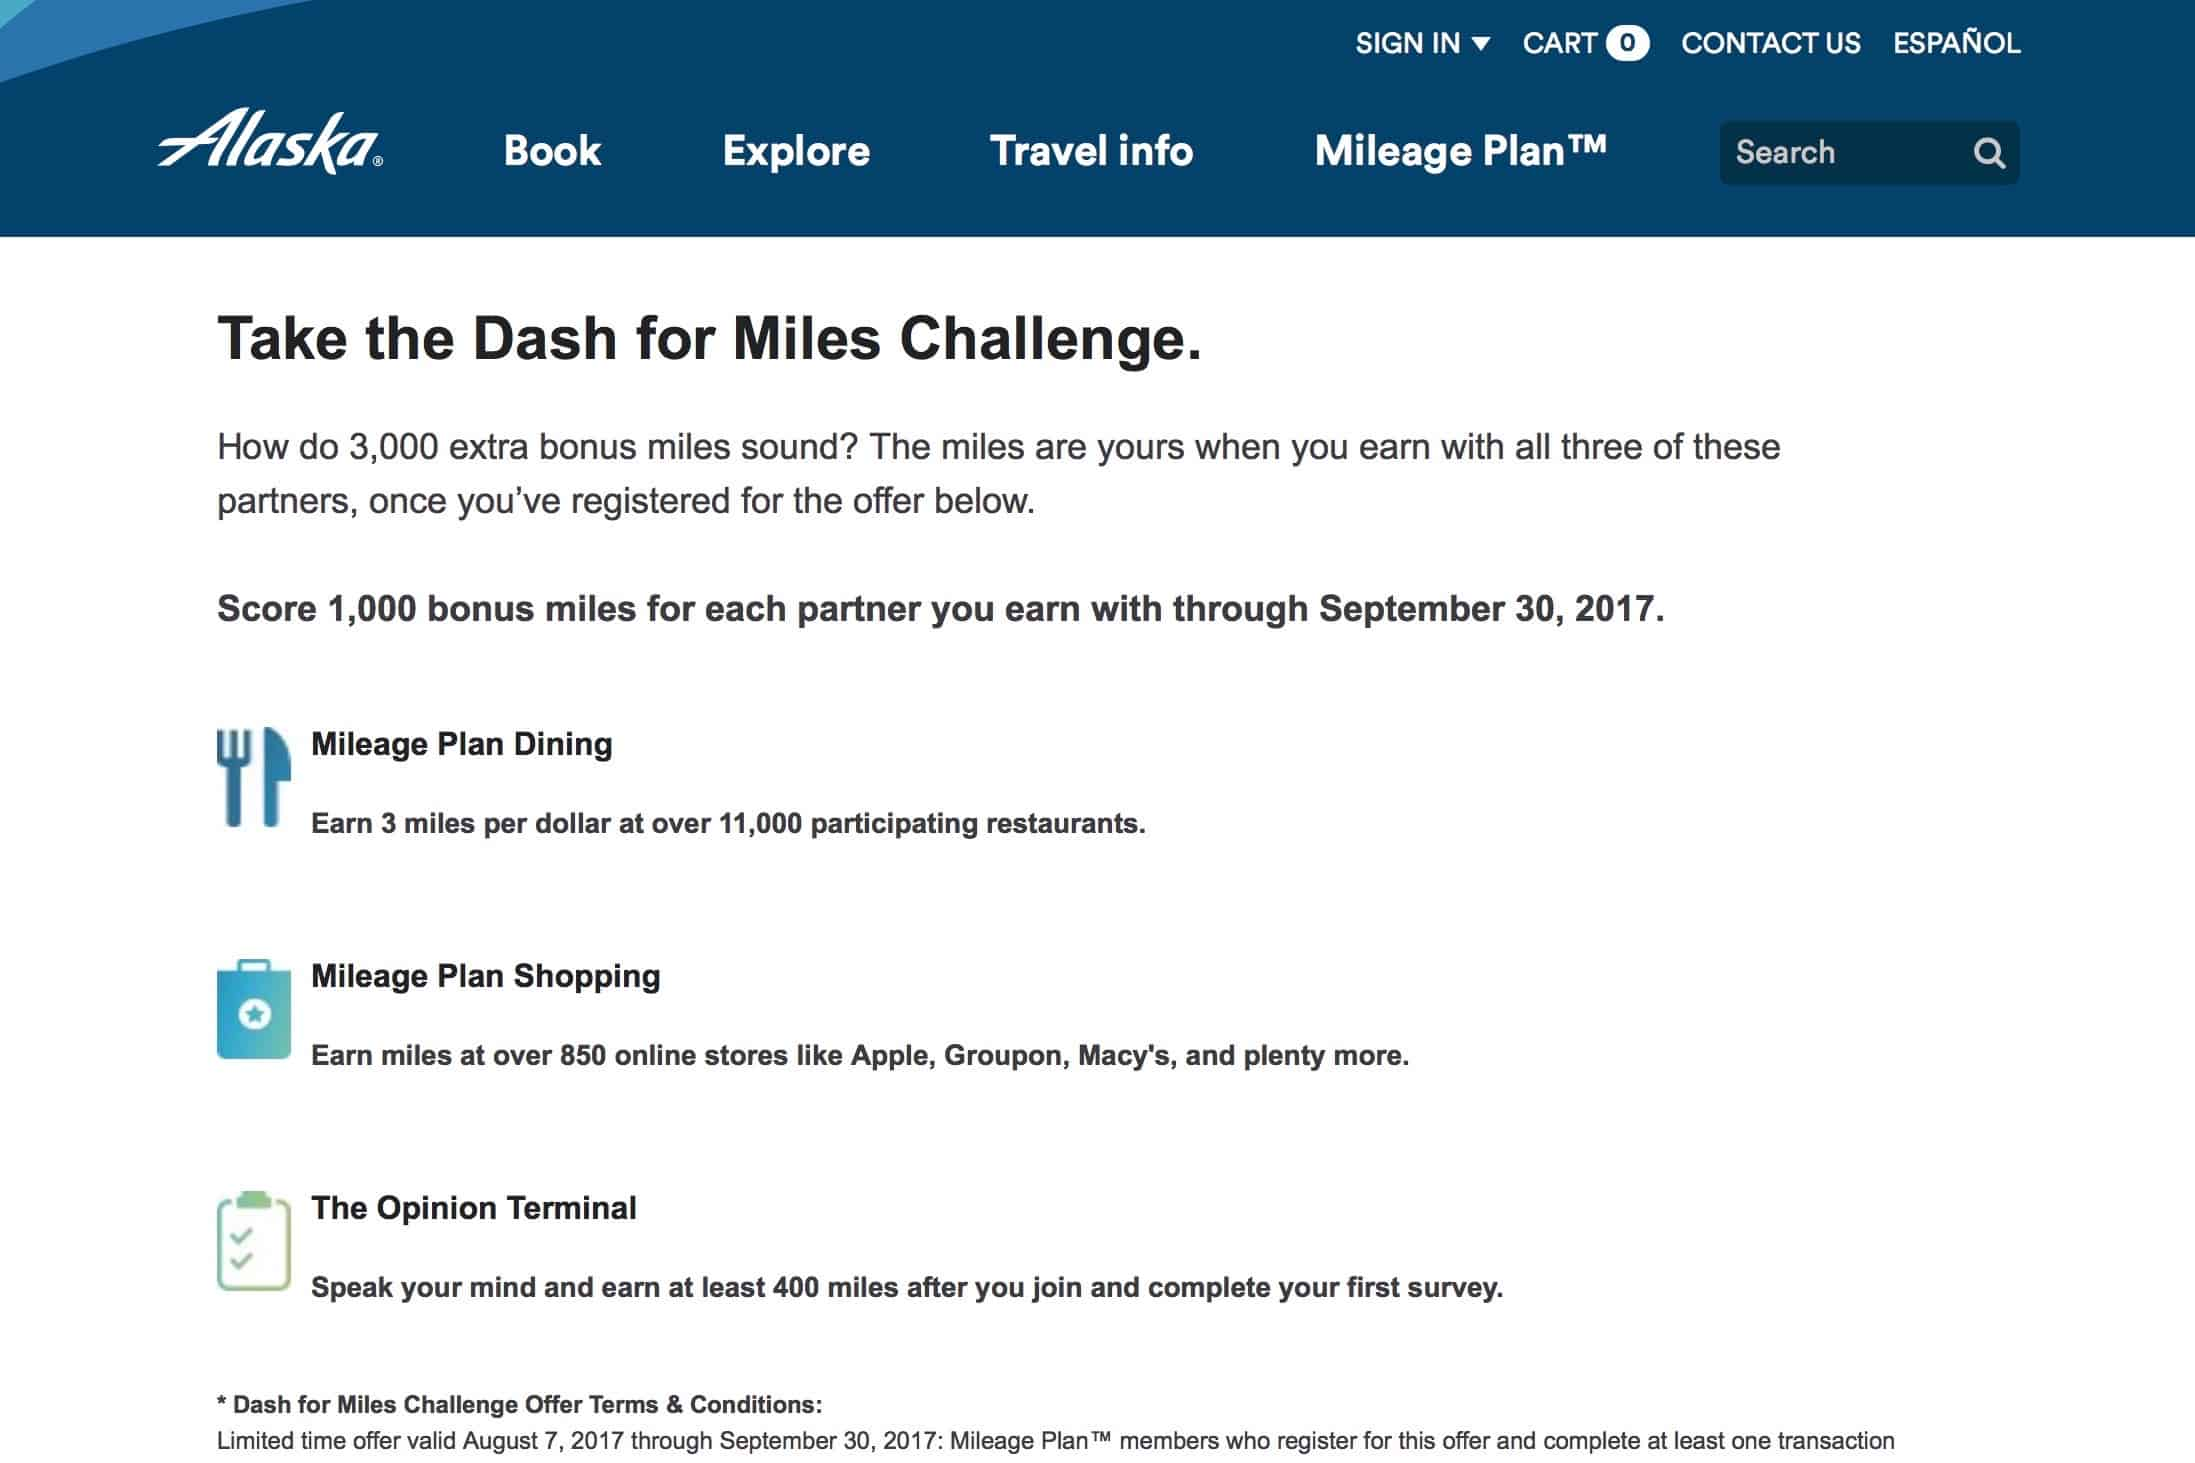 Explore all the ways to earn AAdvantage ® miles with our partners. Earn miles when you shop, dine, travel and more. When you're a member of the American Airlines AAdvantage ® program, your miles and savings add up faster by engaging with our more than 1, partners featured on this site.